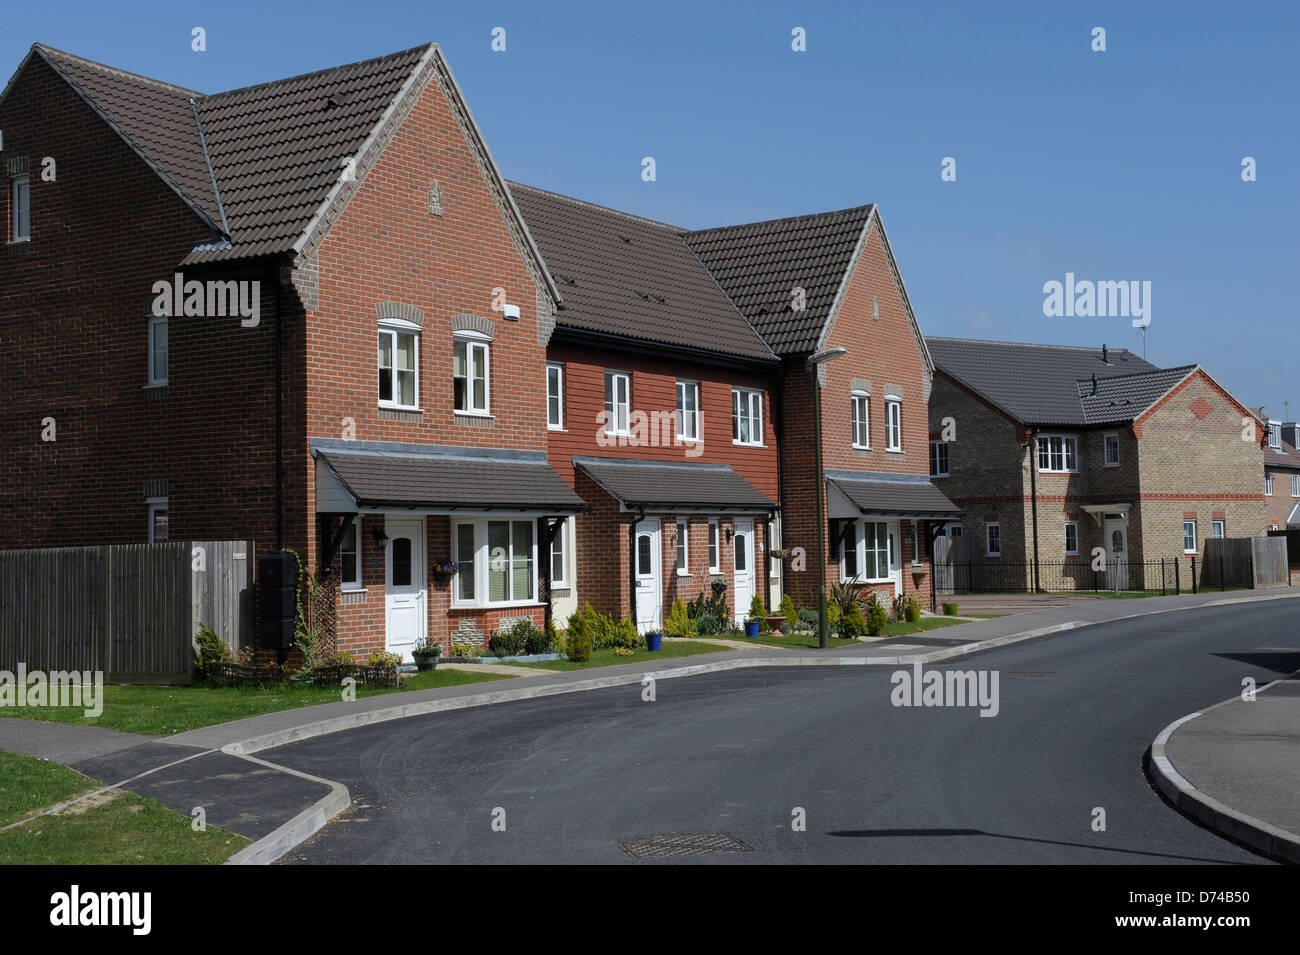 New build houses in Littlehampton West Sussex - Stock Image